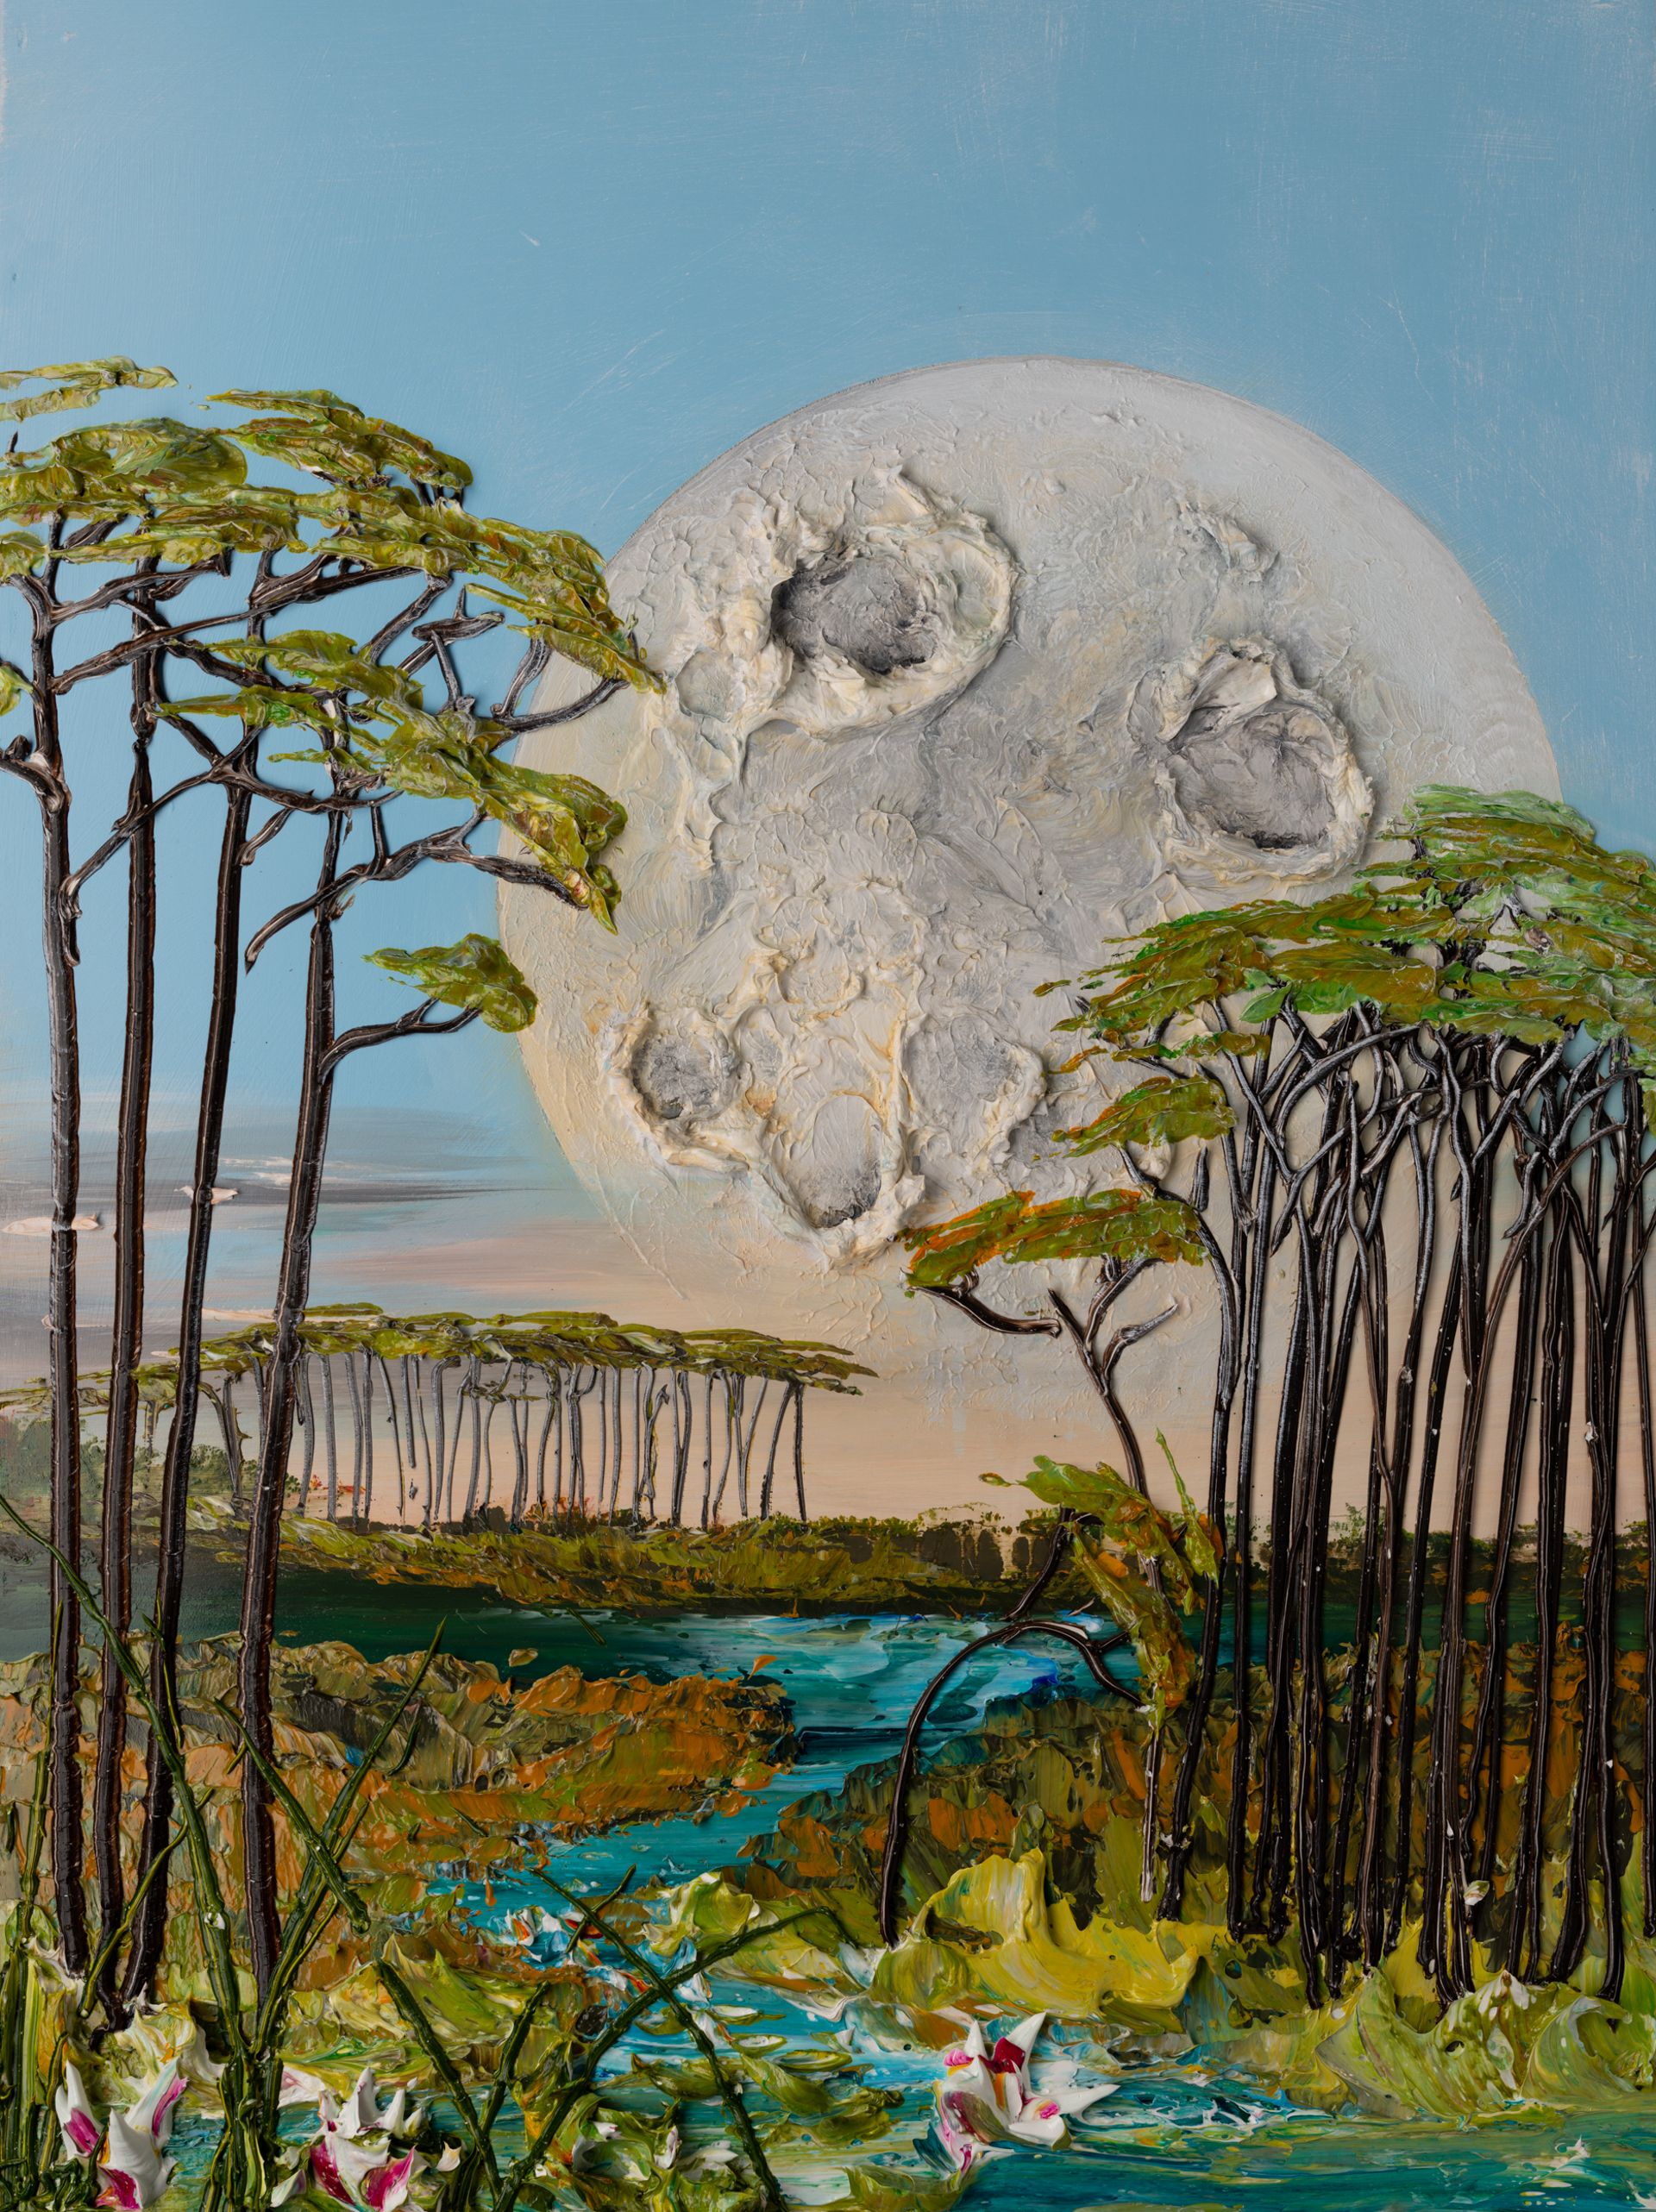 MOONSCAPE MS-30x40-2019-309 by JUSTIN GAFFREY